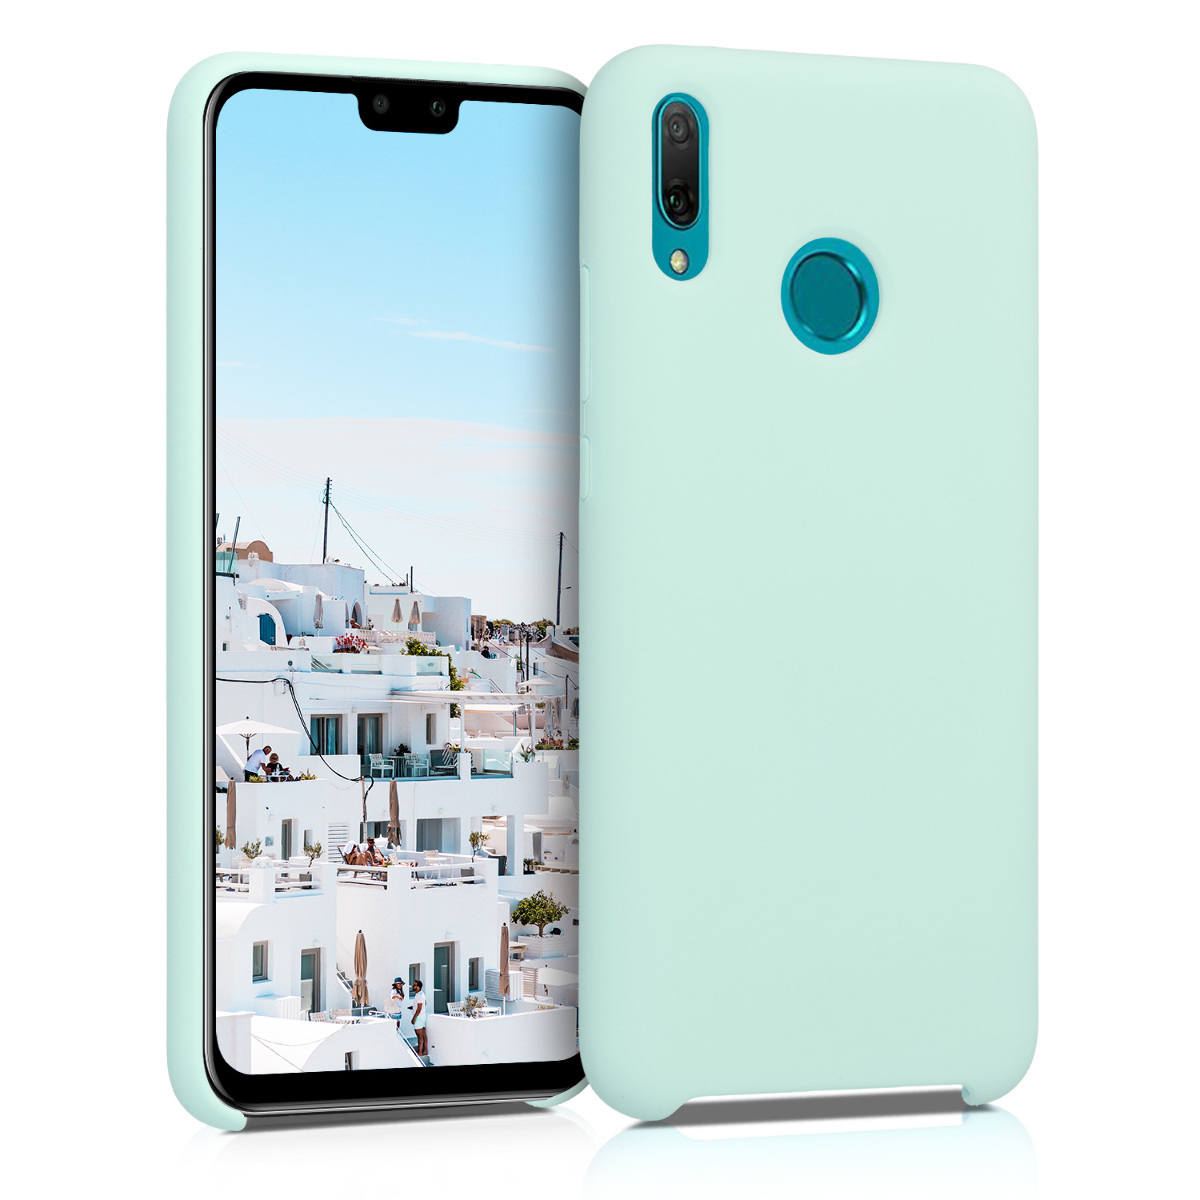 KW Θήκη Σιλικόνης Huawei Y9 2019 - Soft Flexible Rubber - Mint Matte (49514.50)